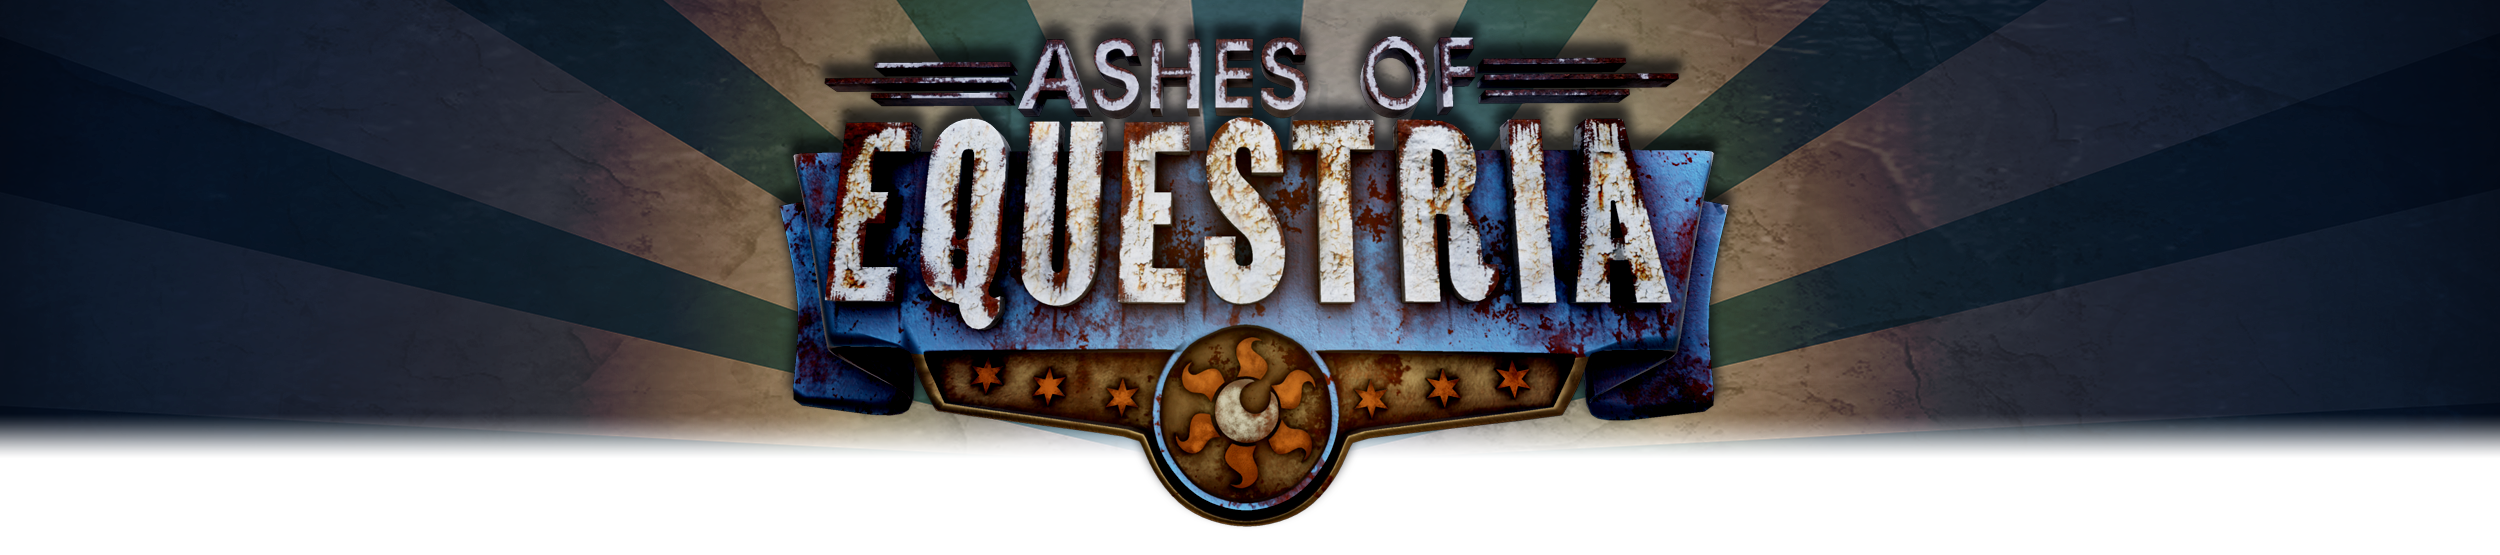 Ashes of Equestria